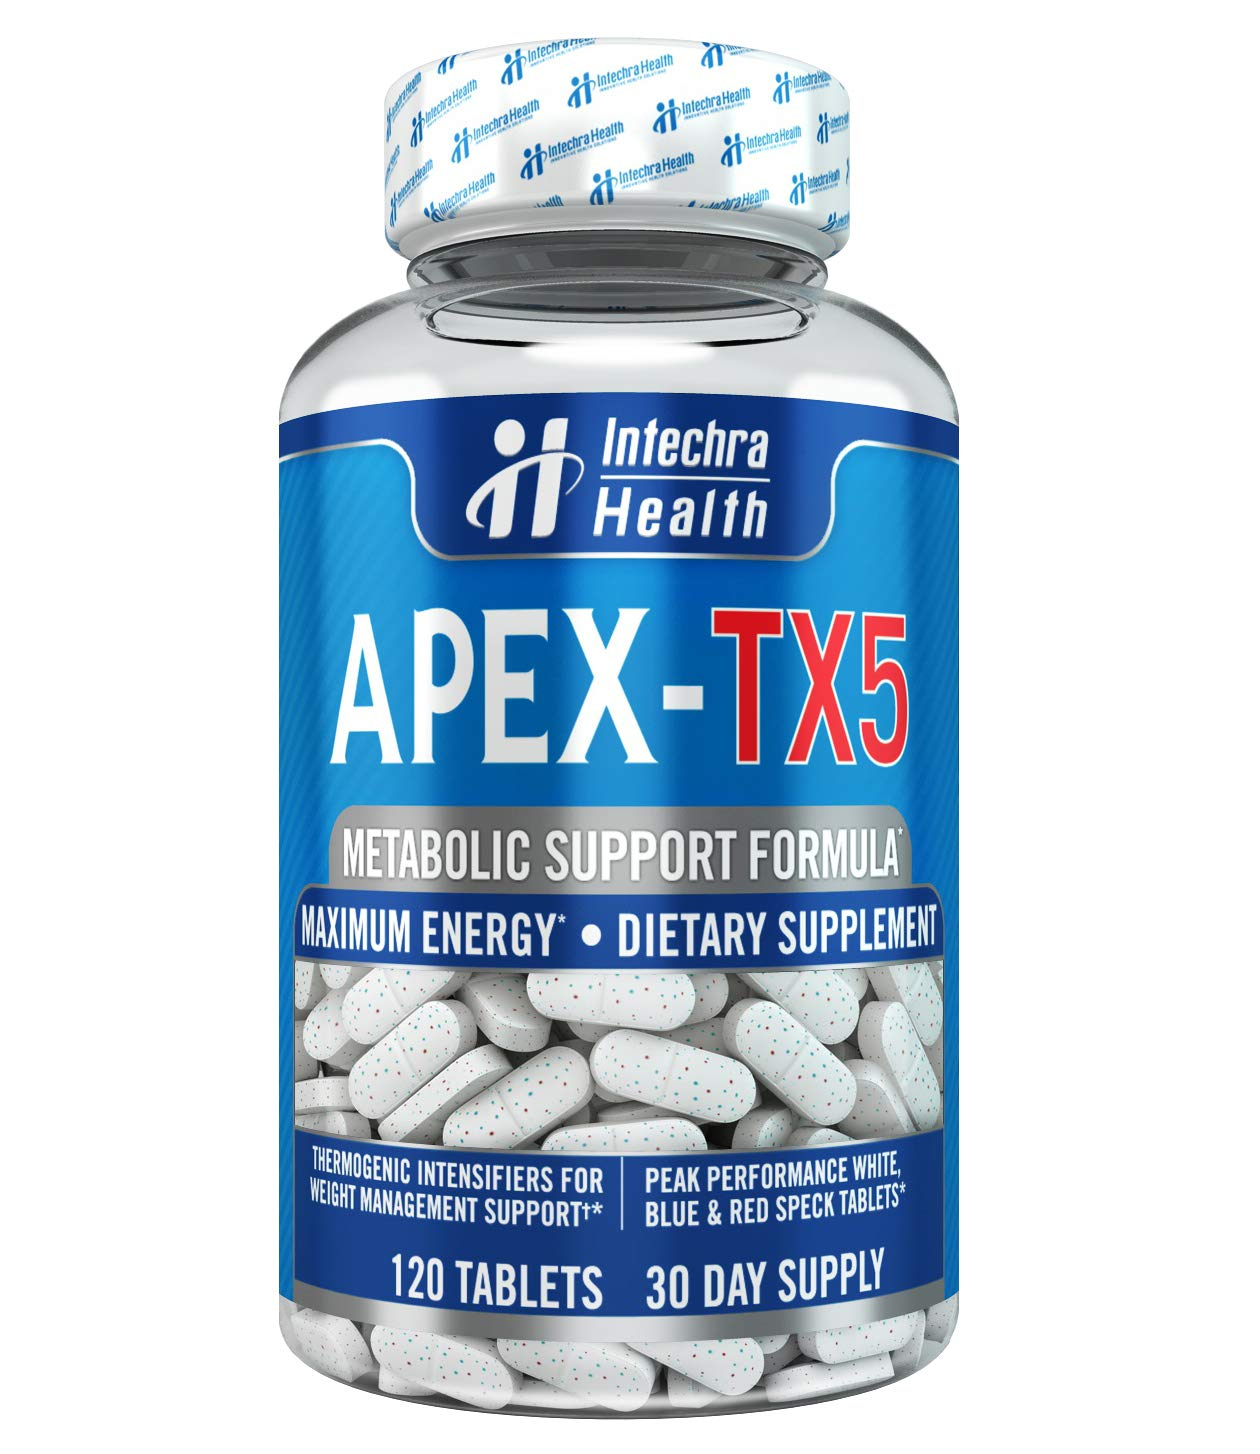 APEX-TX5 Weight Management Dietary Supplement 120 White Blue Red Speck Tablets Made in the USA Highest Professional Quality by APEX-TX5